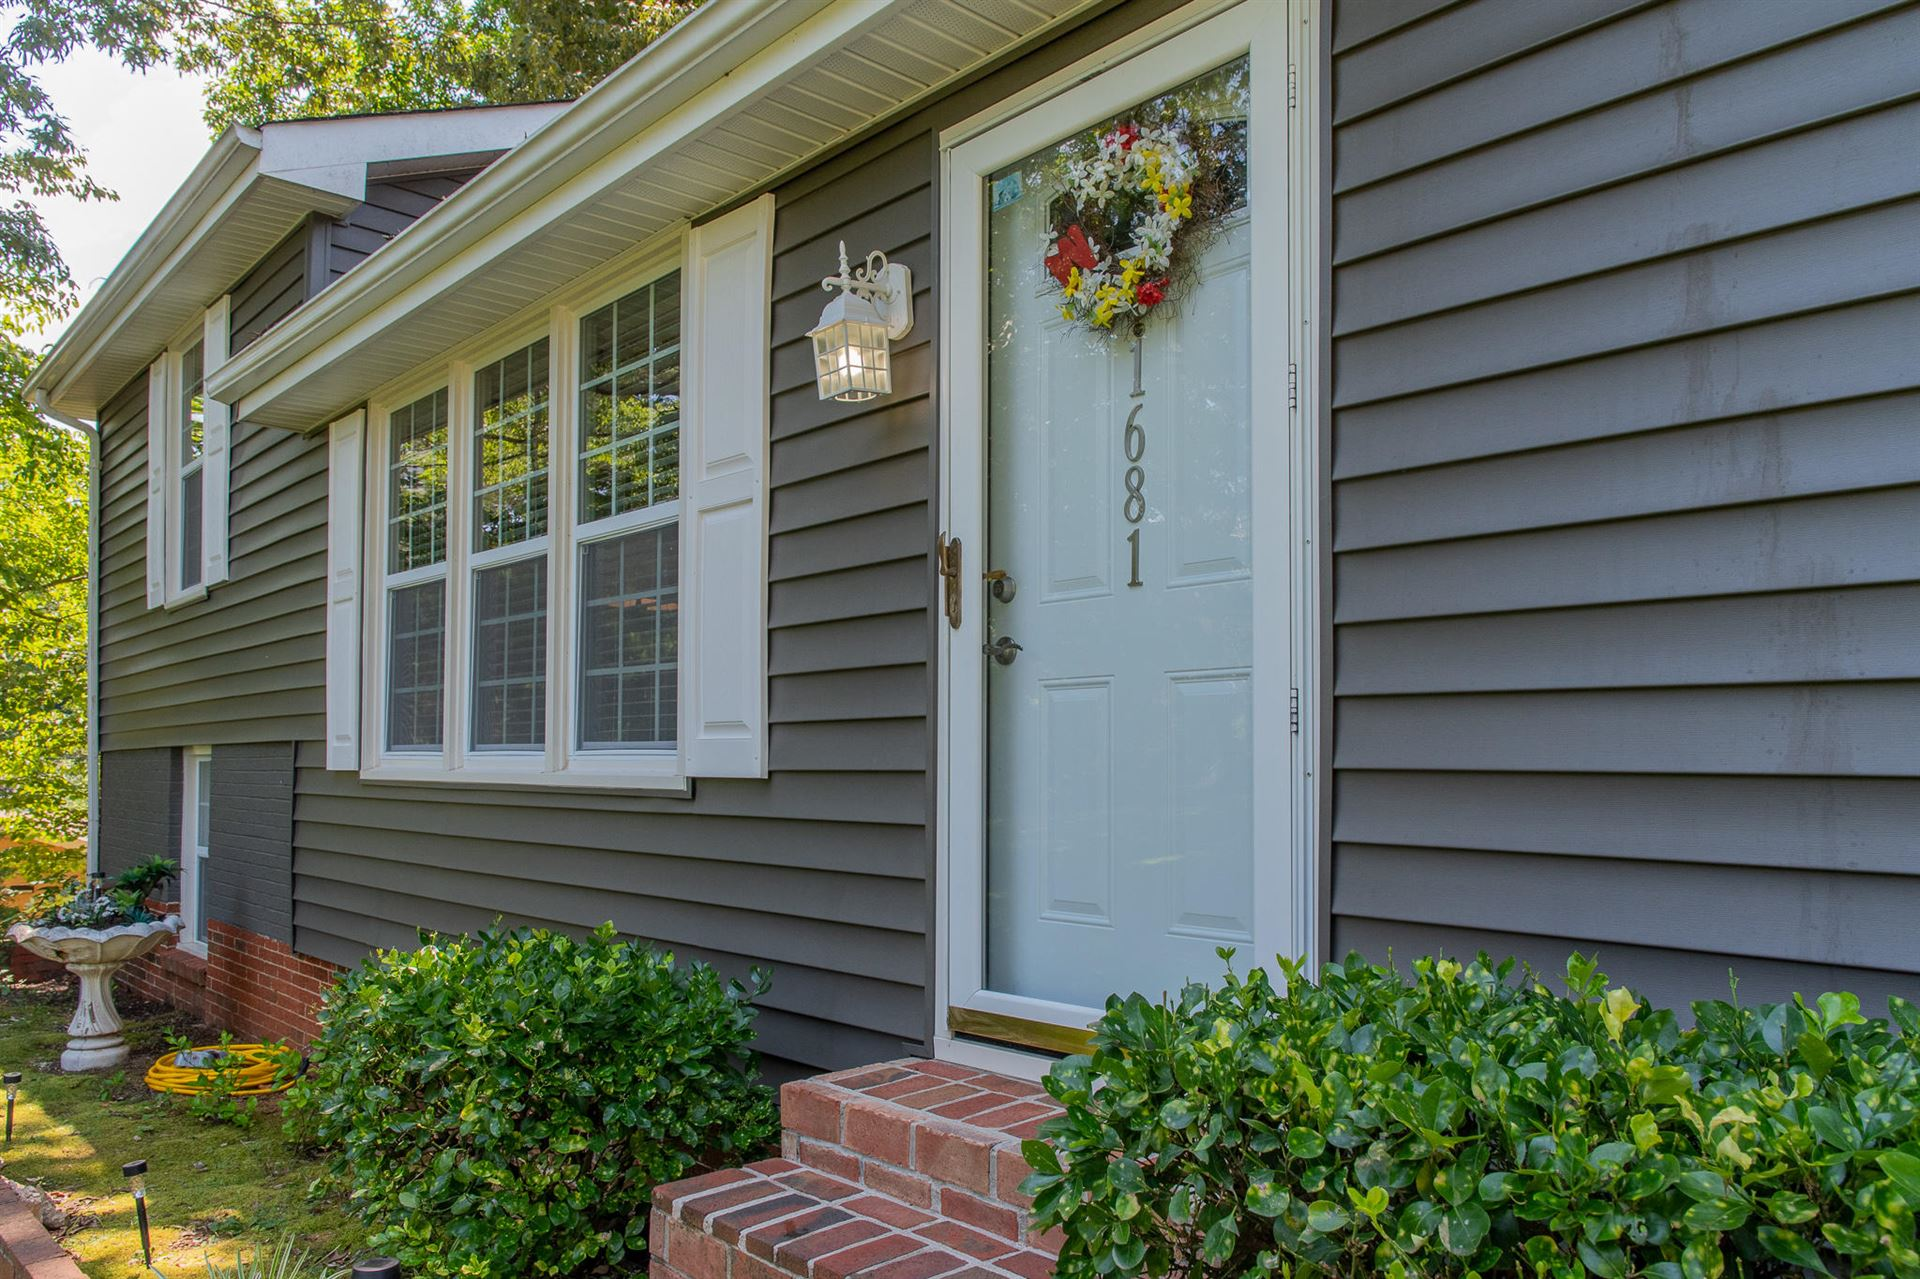 Photo of 1681 New Hope Drive, Cookeville, TN 38506 (MLS # 1156884)